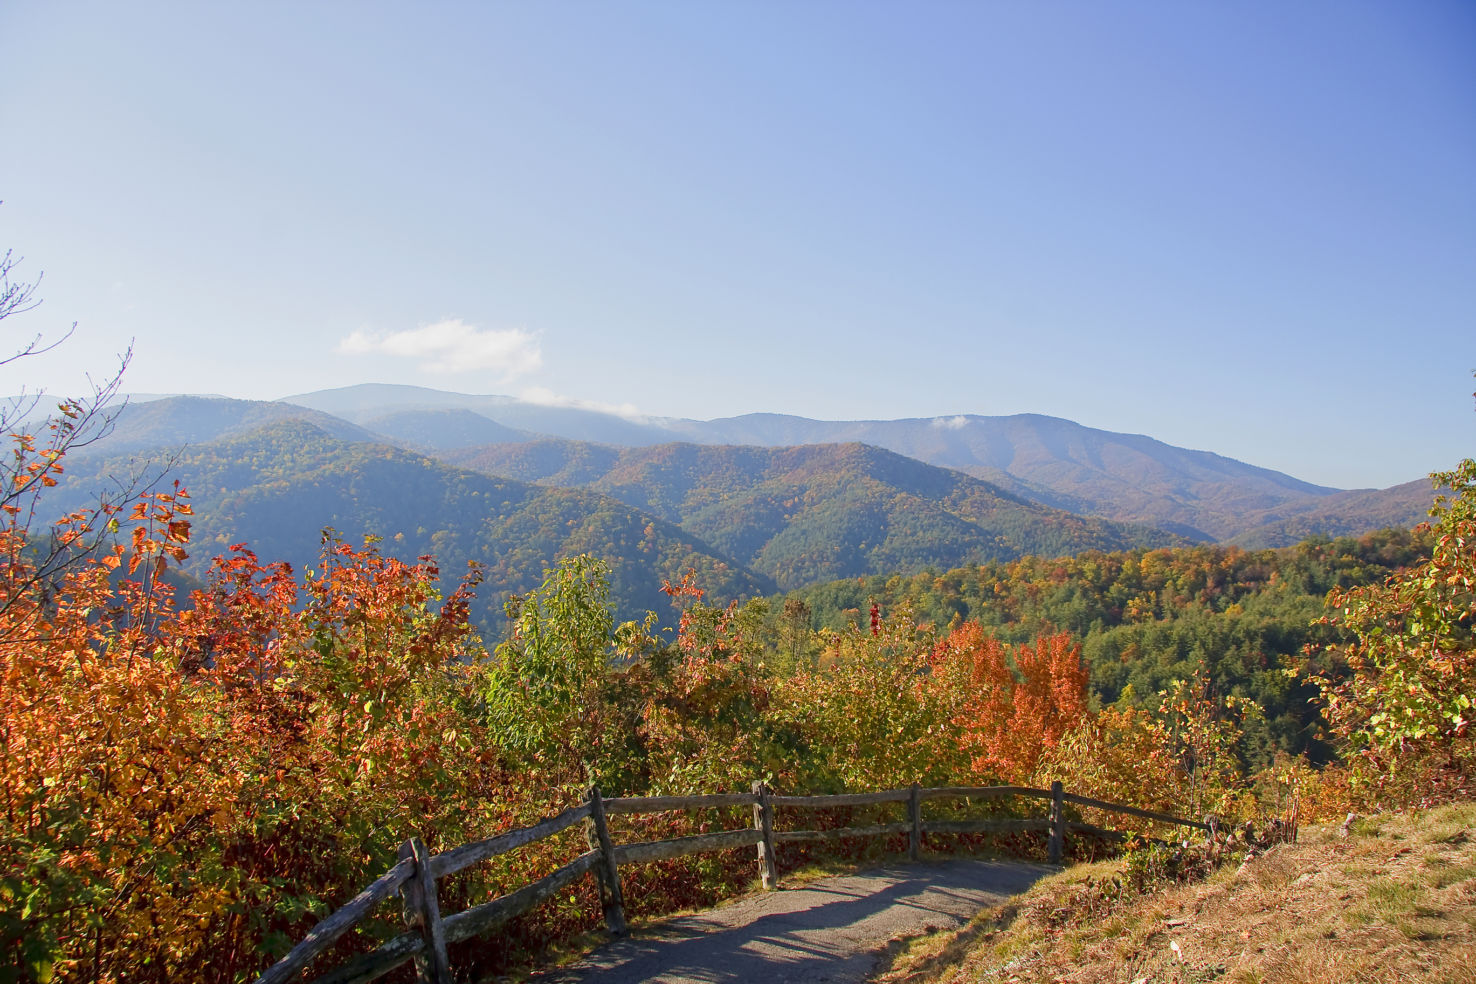 Blue Ridge Mountains close to Elkin, NC (CST Winner 2014) and Brevard, NC (CST Winner 2010)